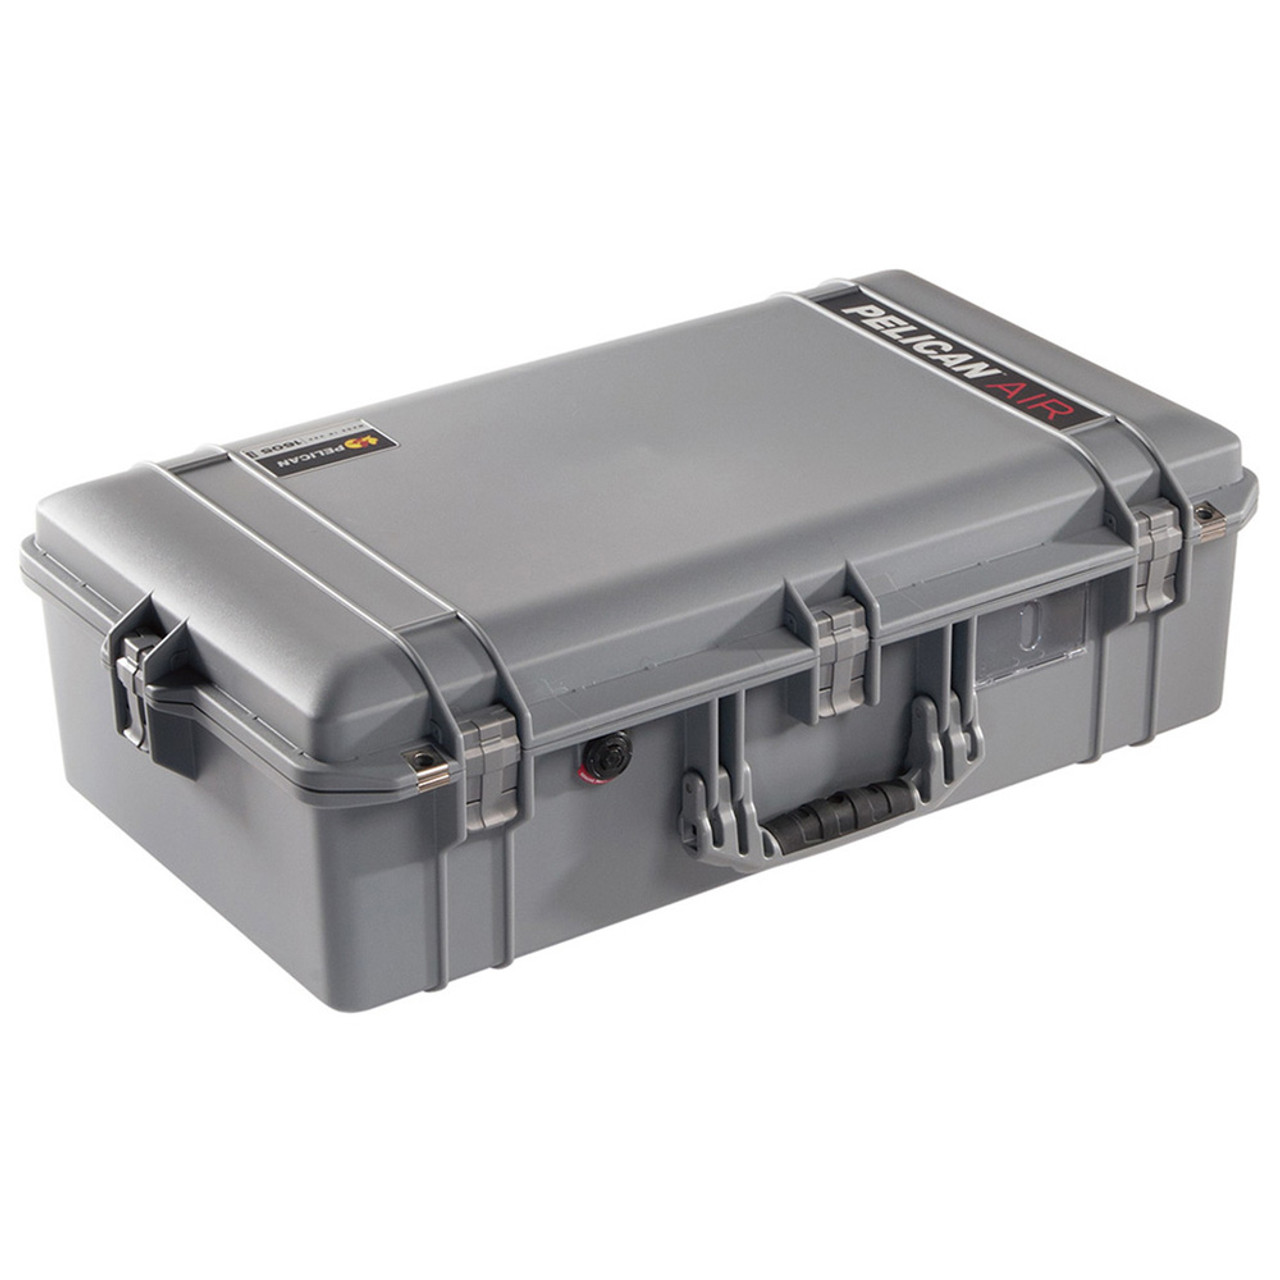 Black /& Blue Pelican 1525 Air case with Yellow Padded dividers.